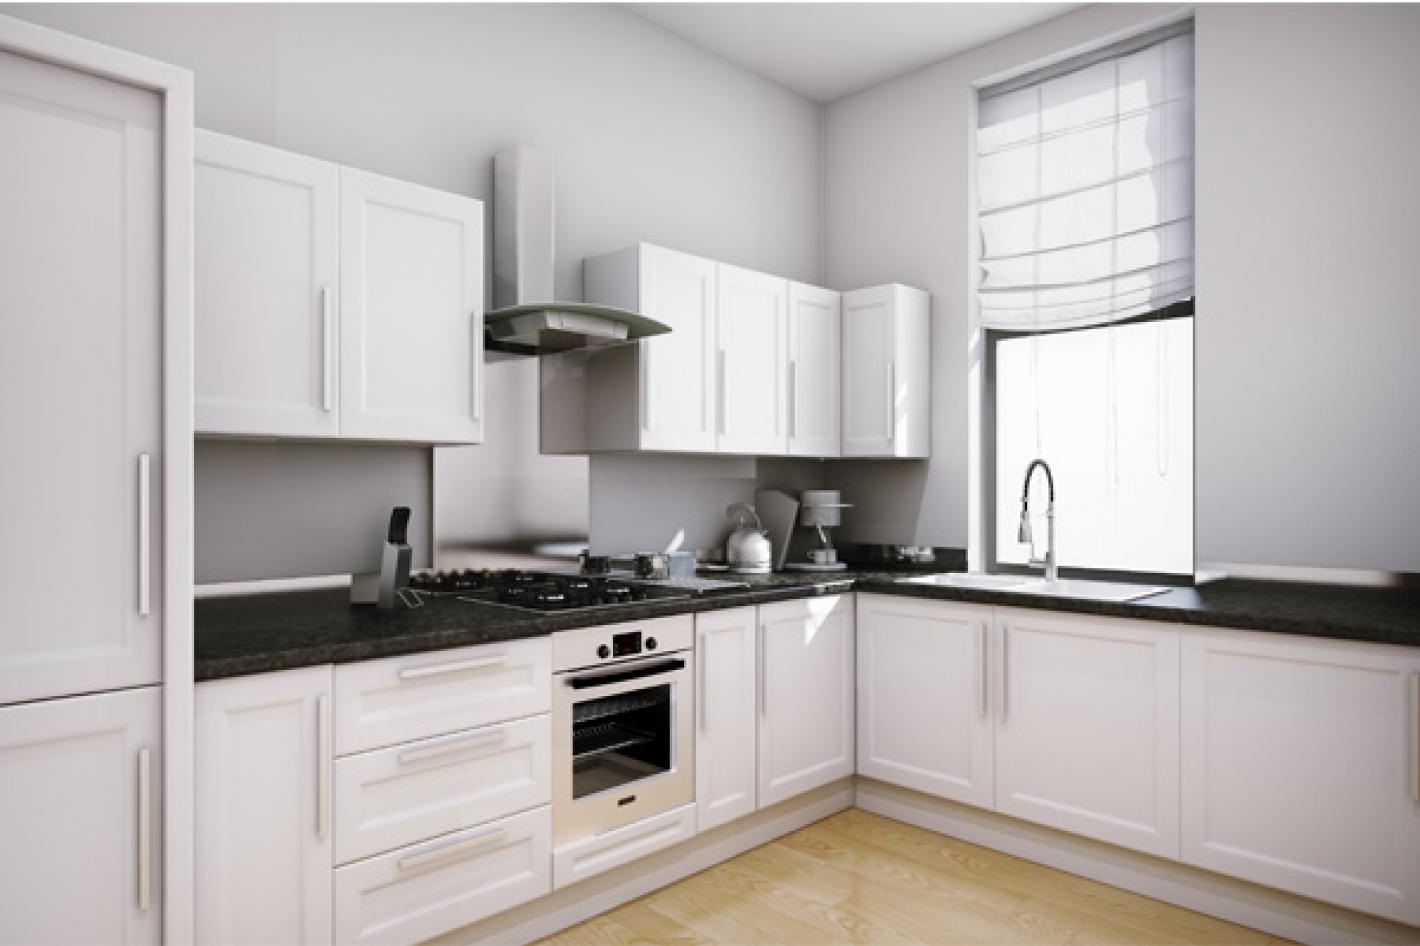 white kitche with white furnishings and a built in oven